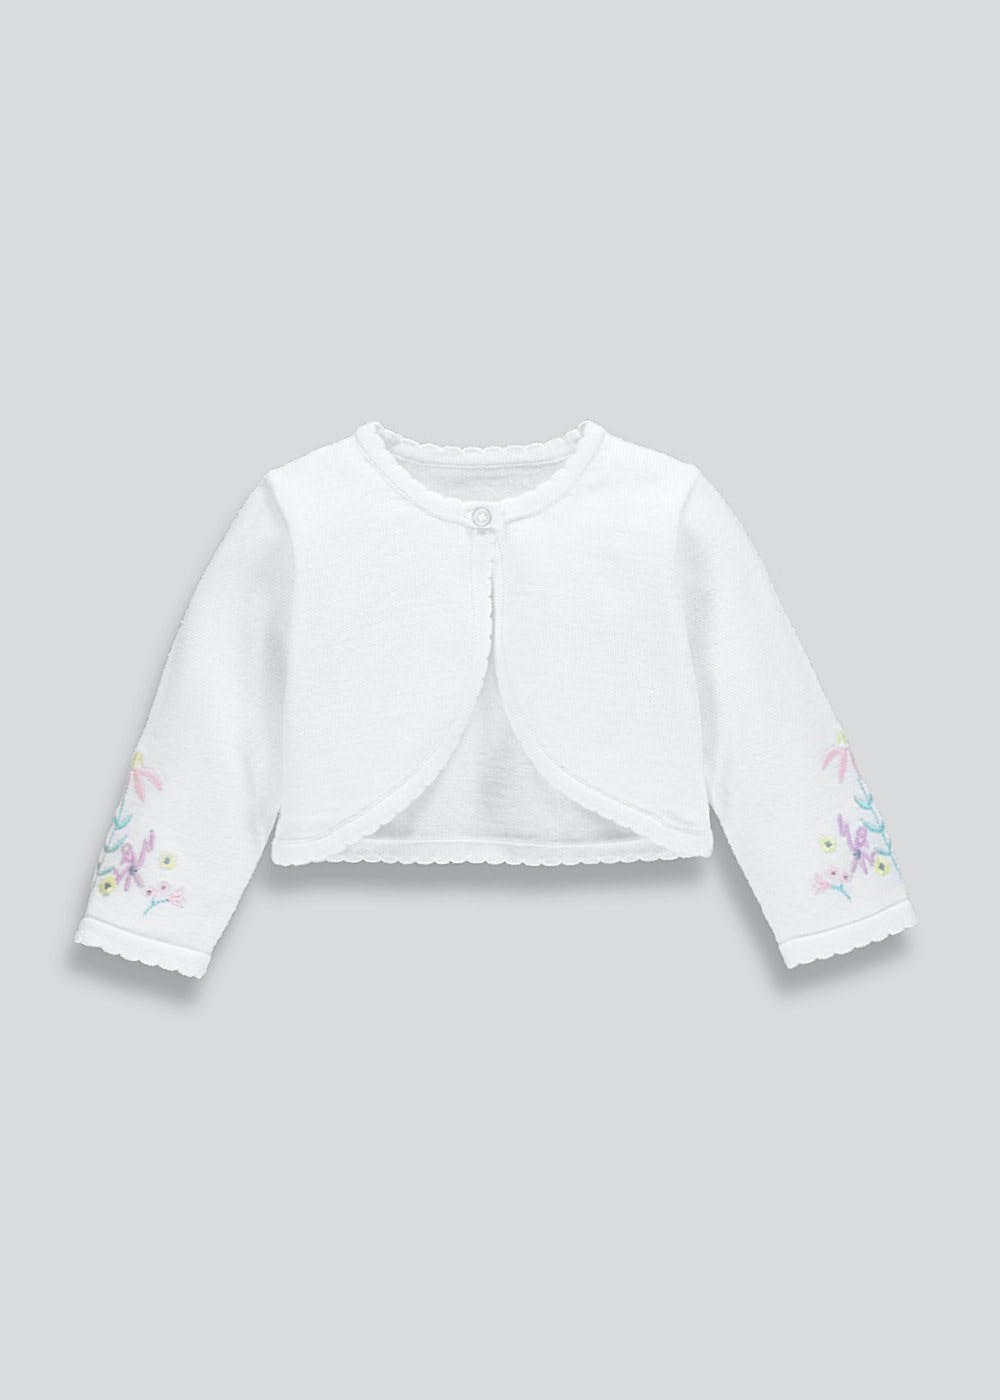 9091fca49c4 Girls Floral Embroidered Bolero Cardigan (Newborn-18mths) – White ...